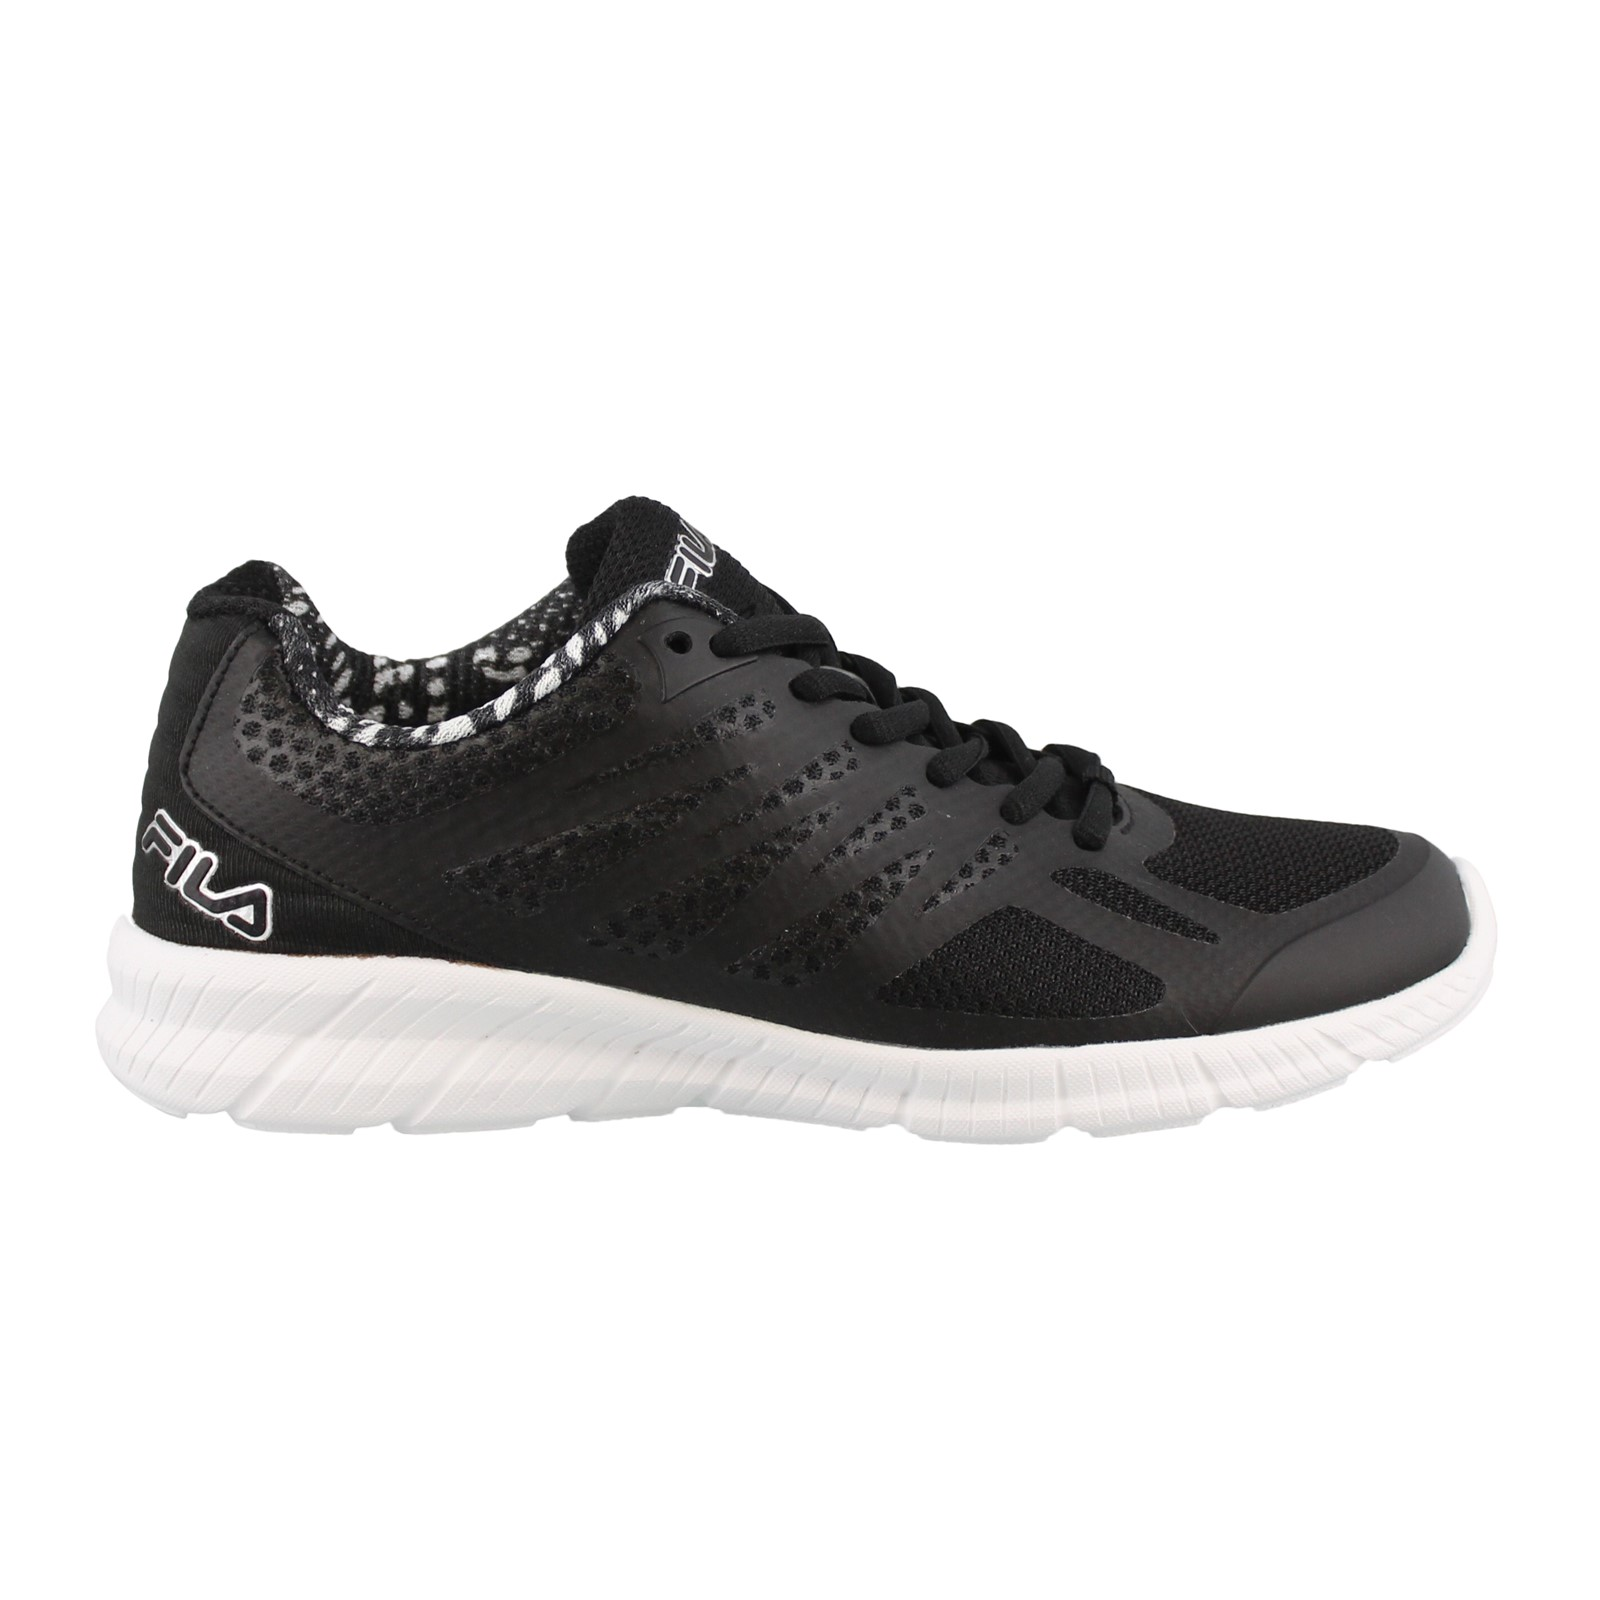 Women's Fila, Memory Speedstride Running Sneakers